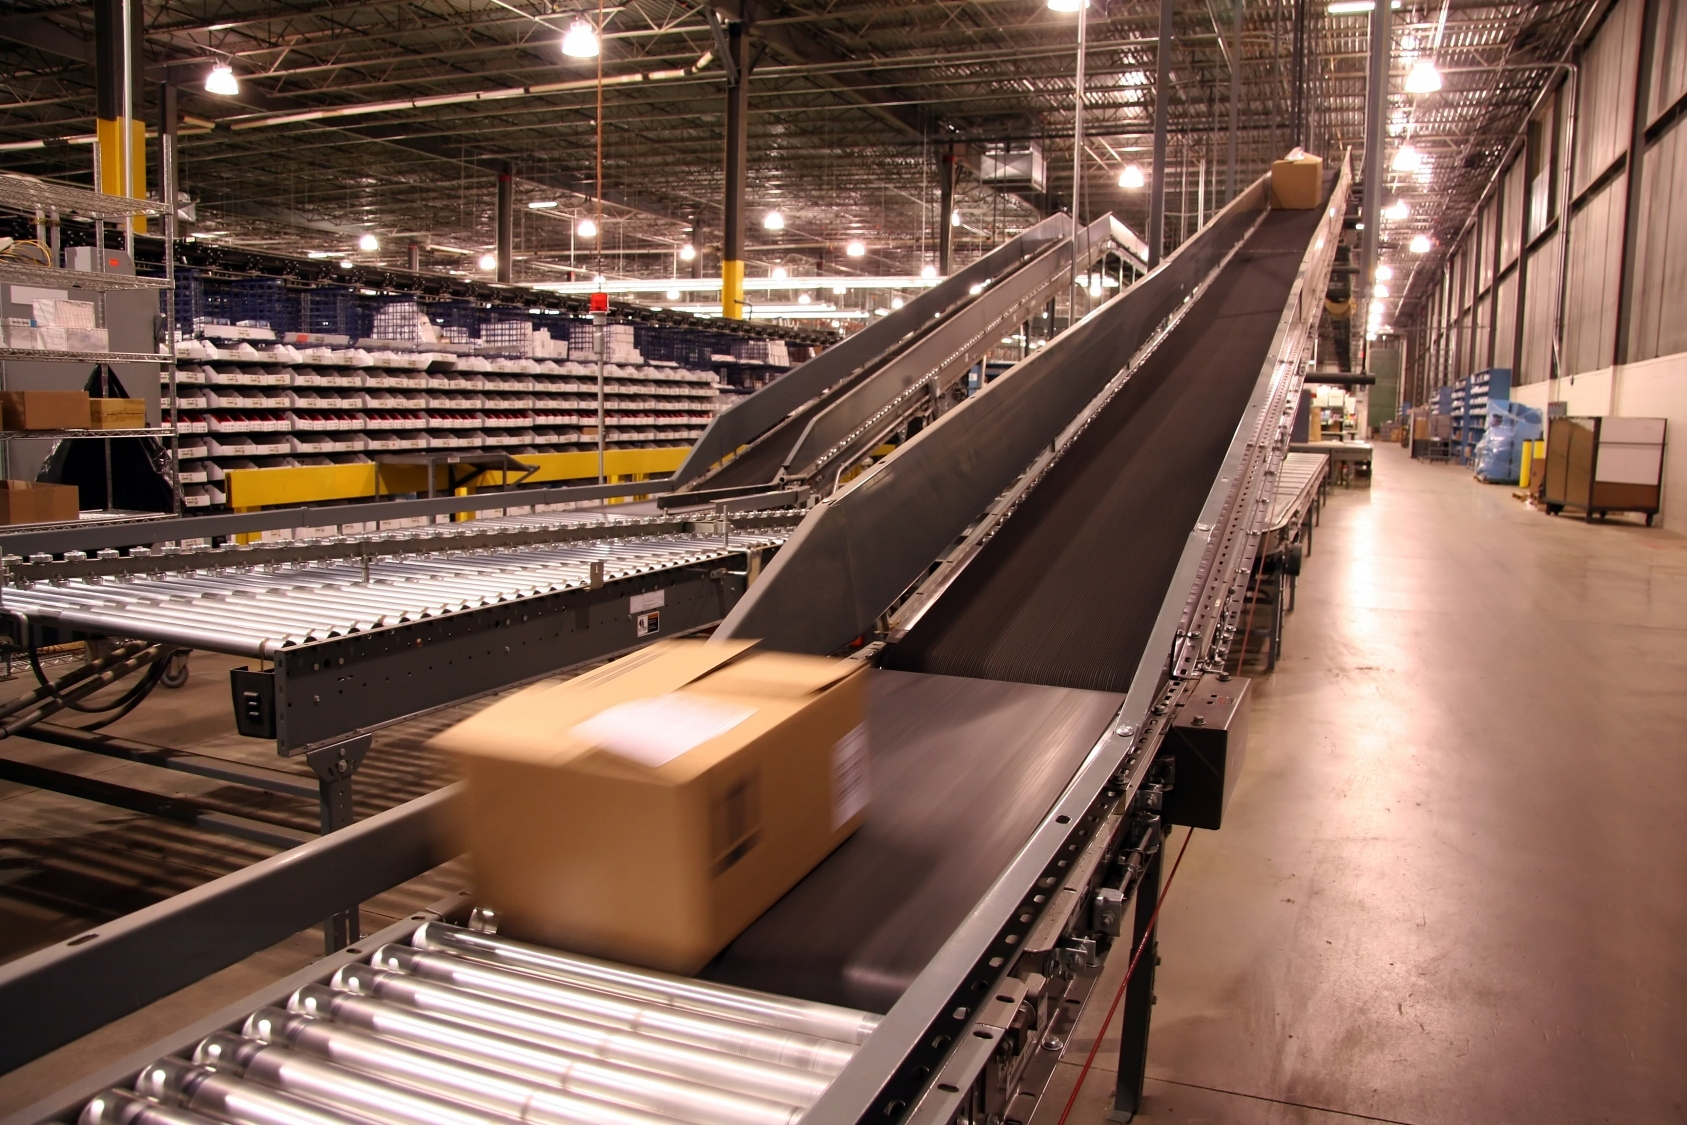 box moving on conveyor belt